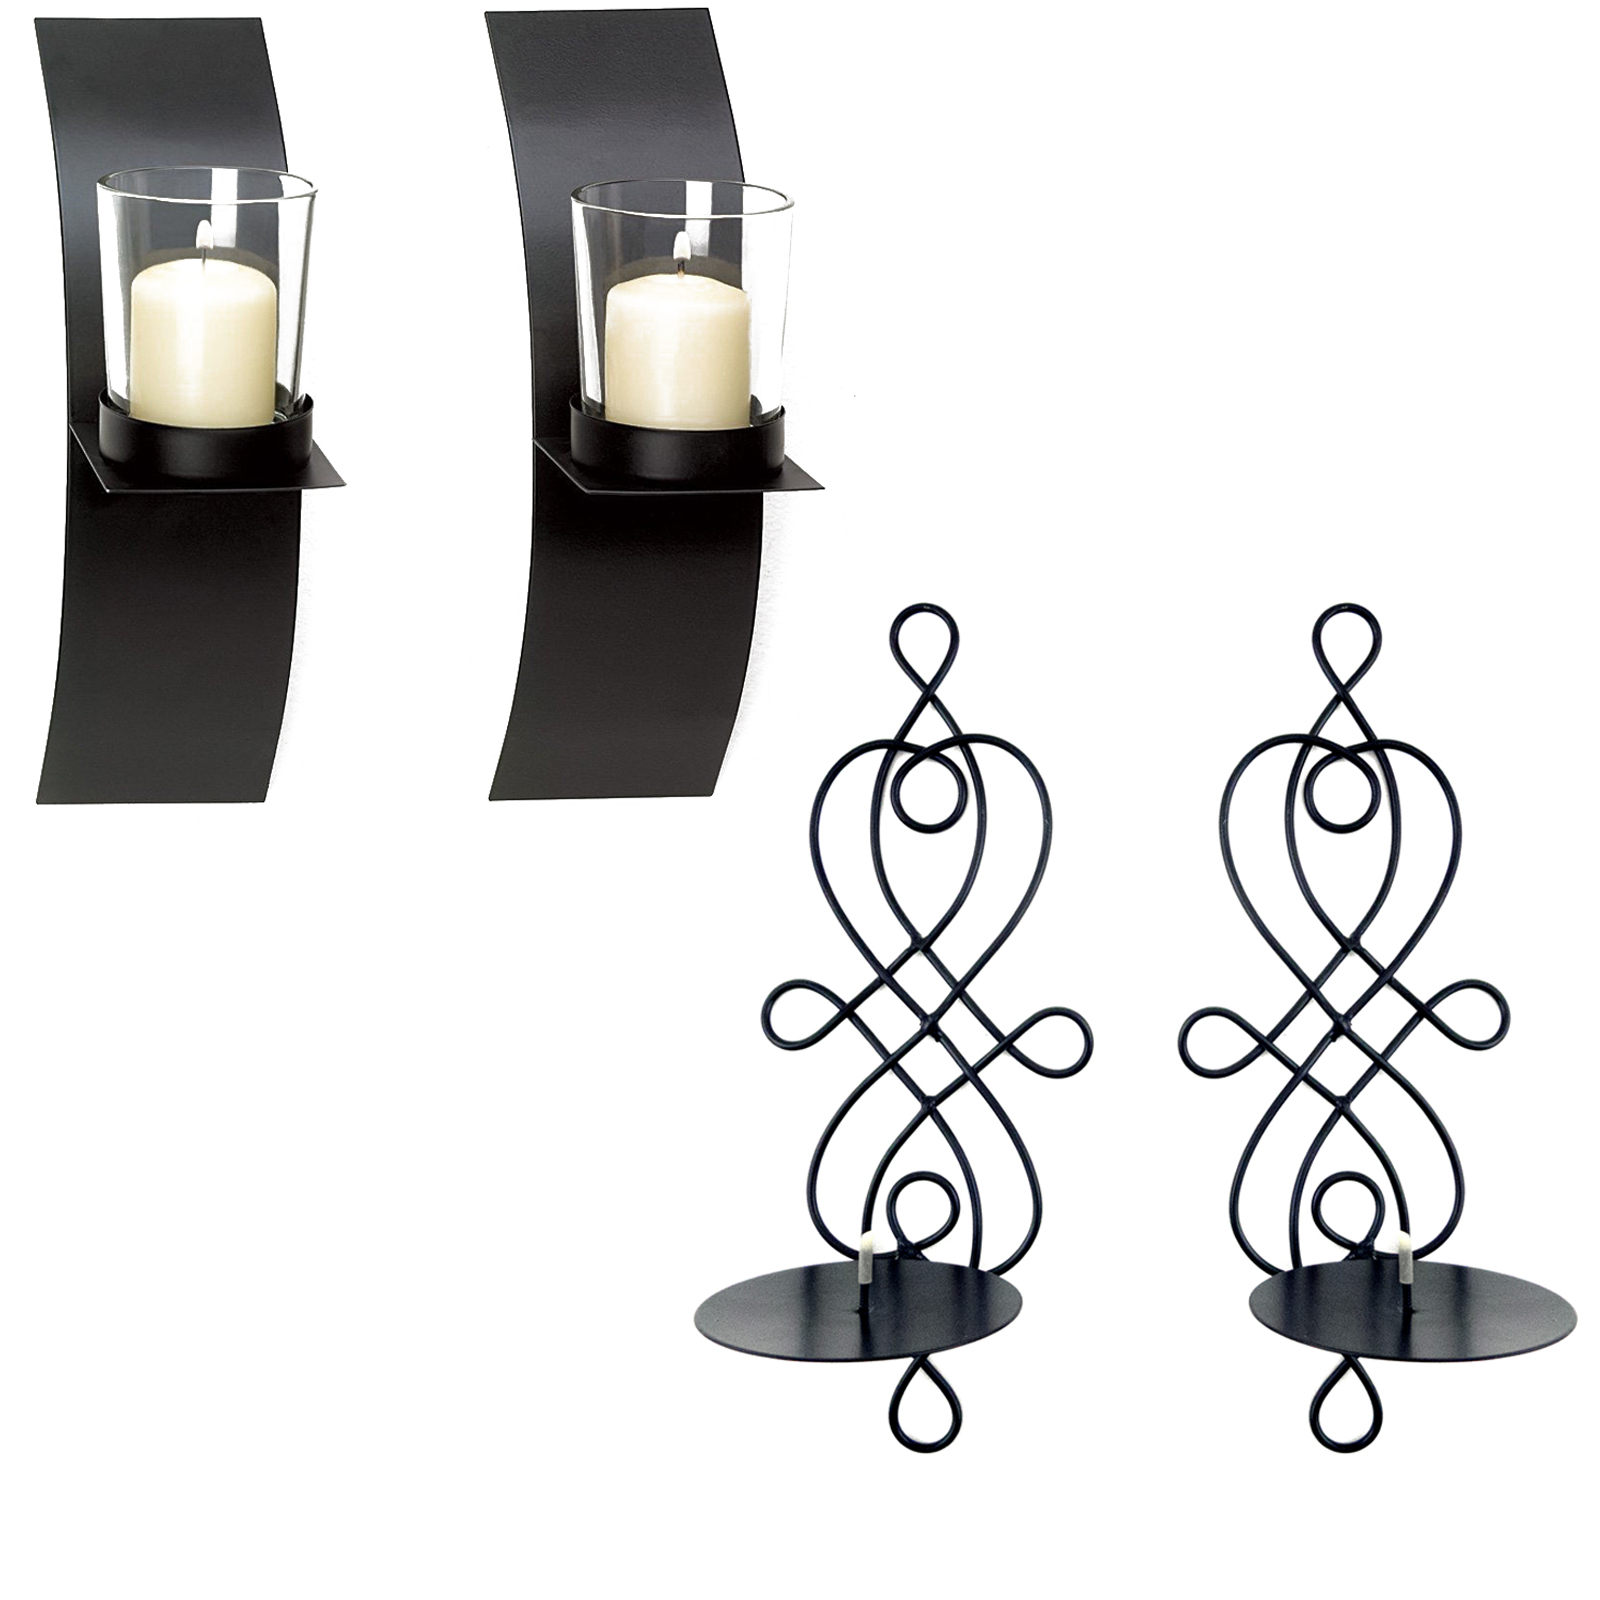 Home decor modern art candle holder wall sconce black wire for All modern accessories